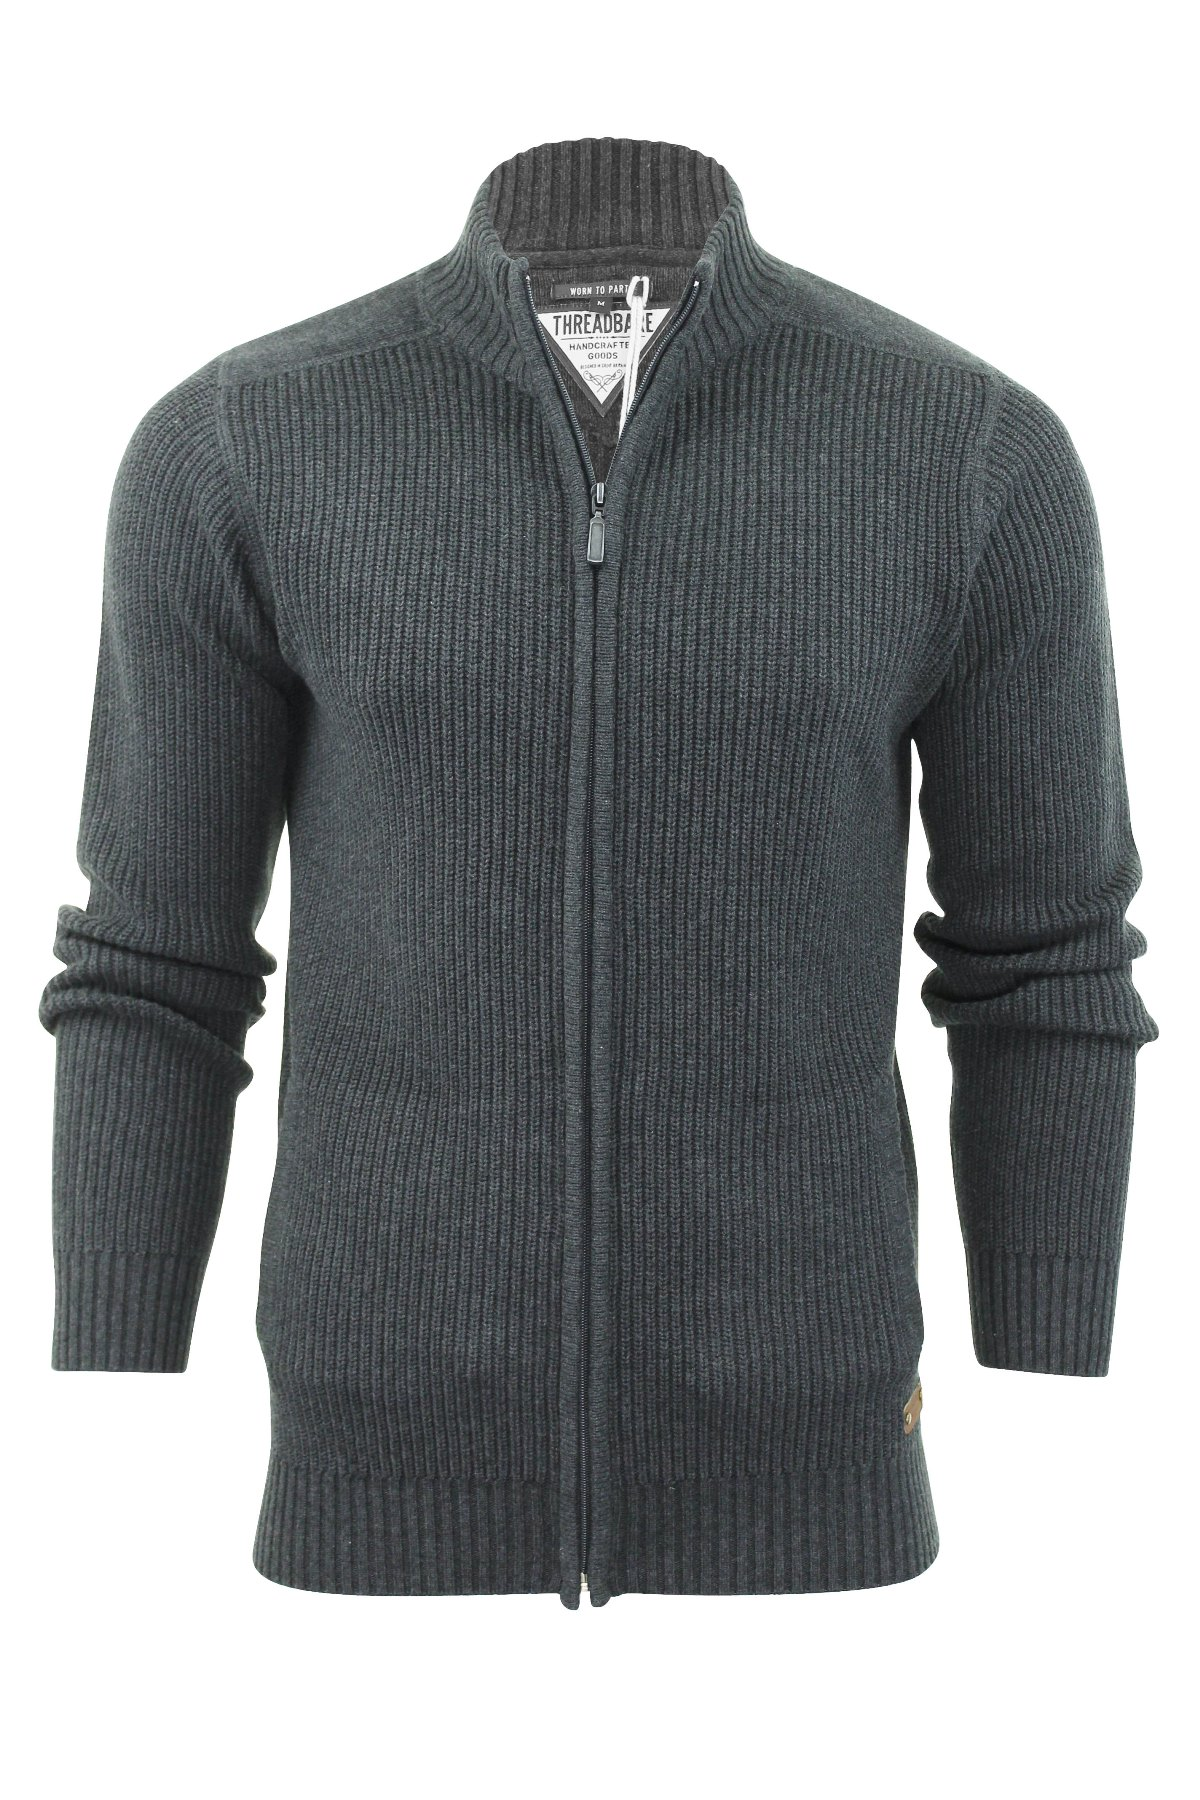 Mens Zip Cardigan Sweater 99